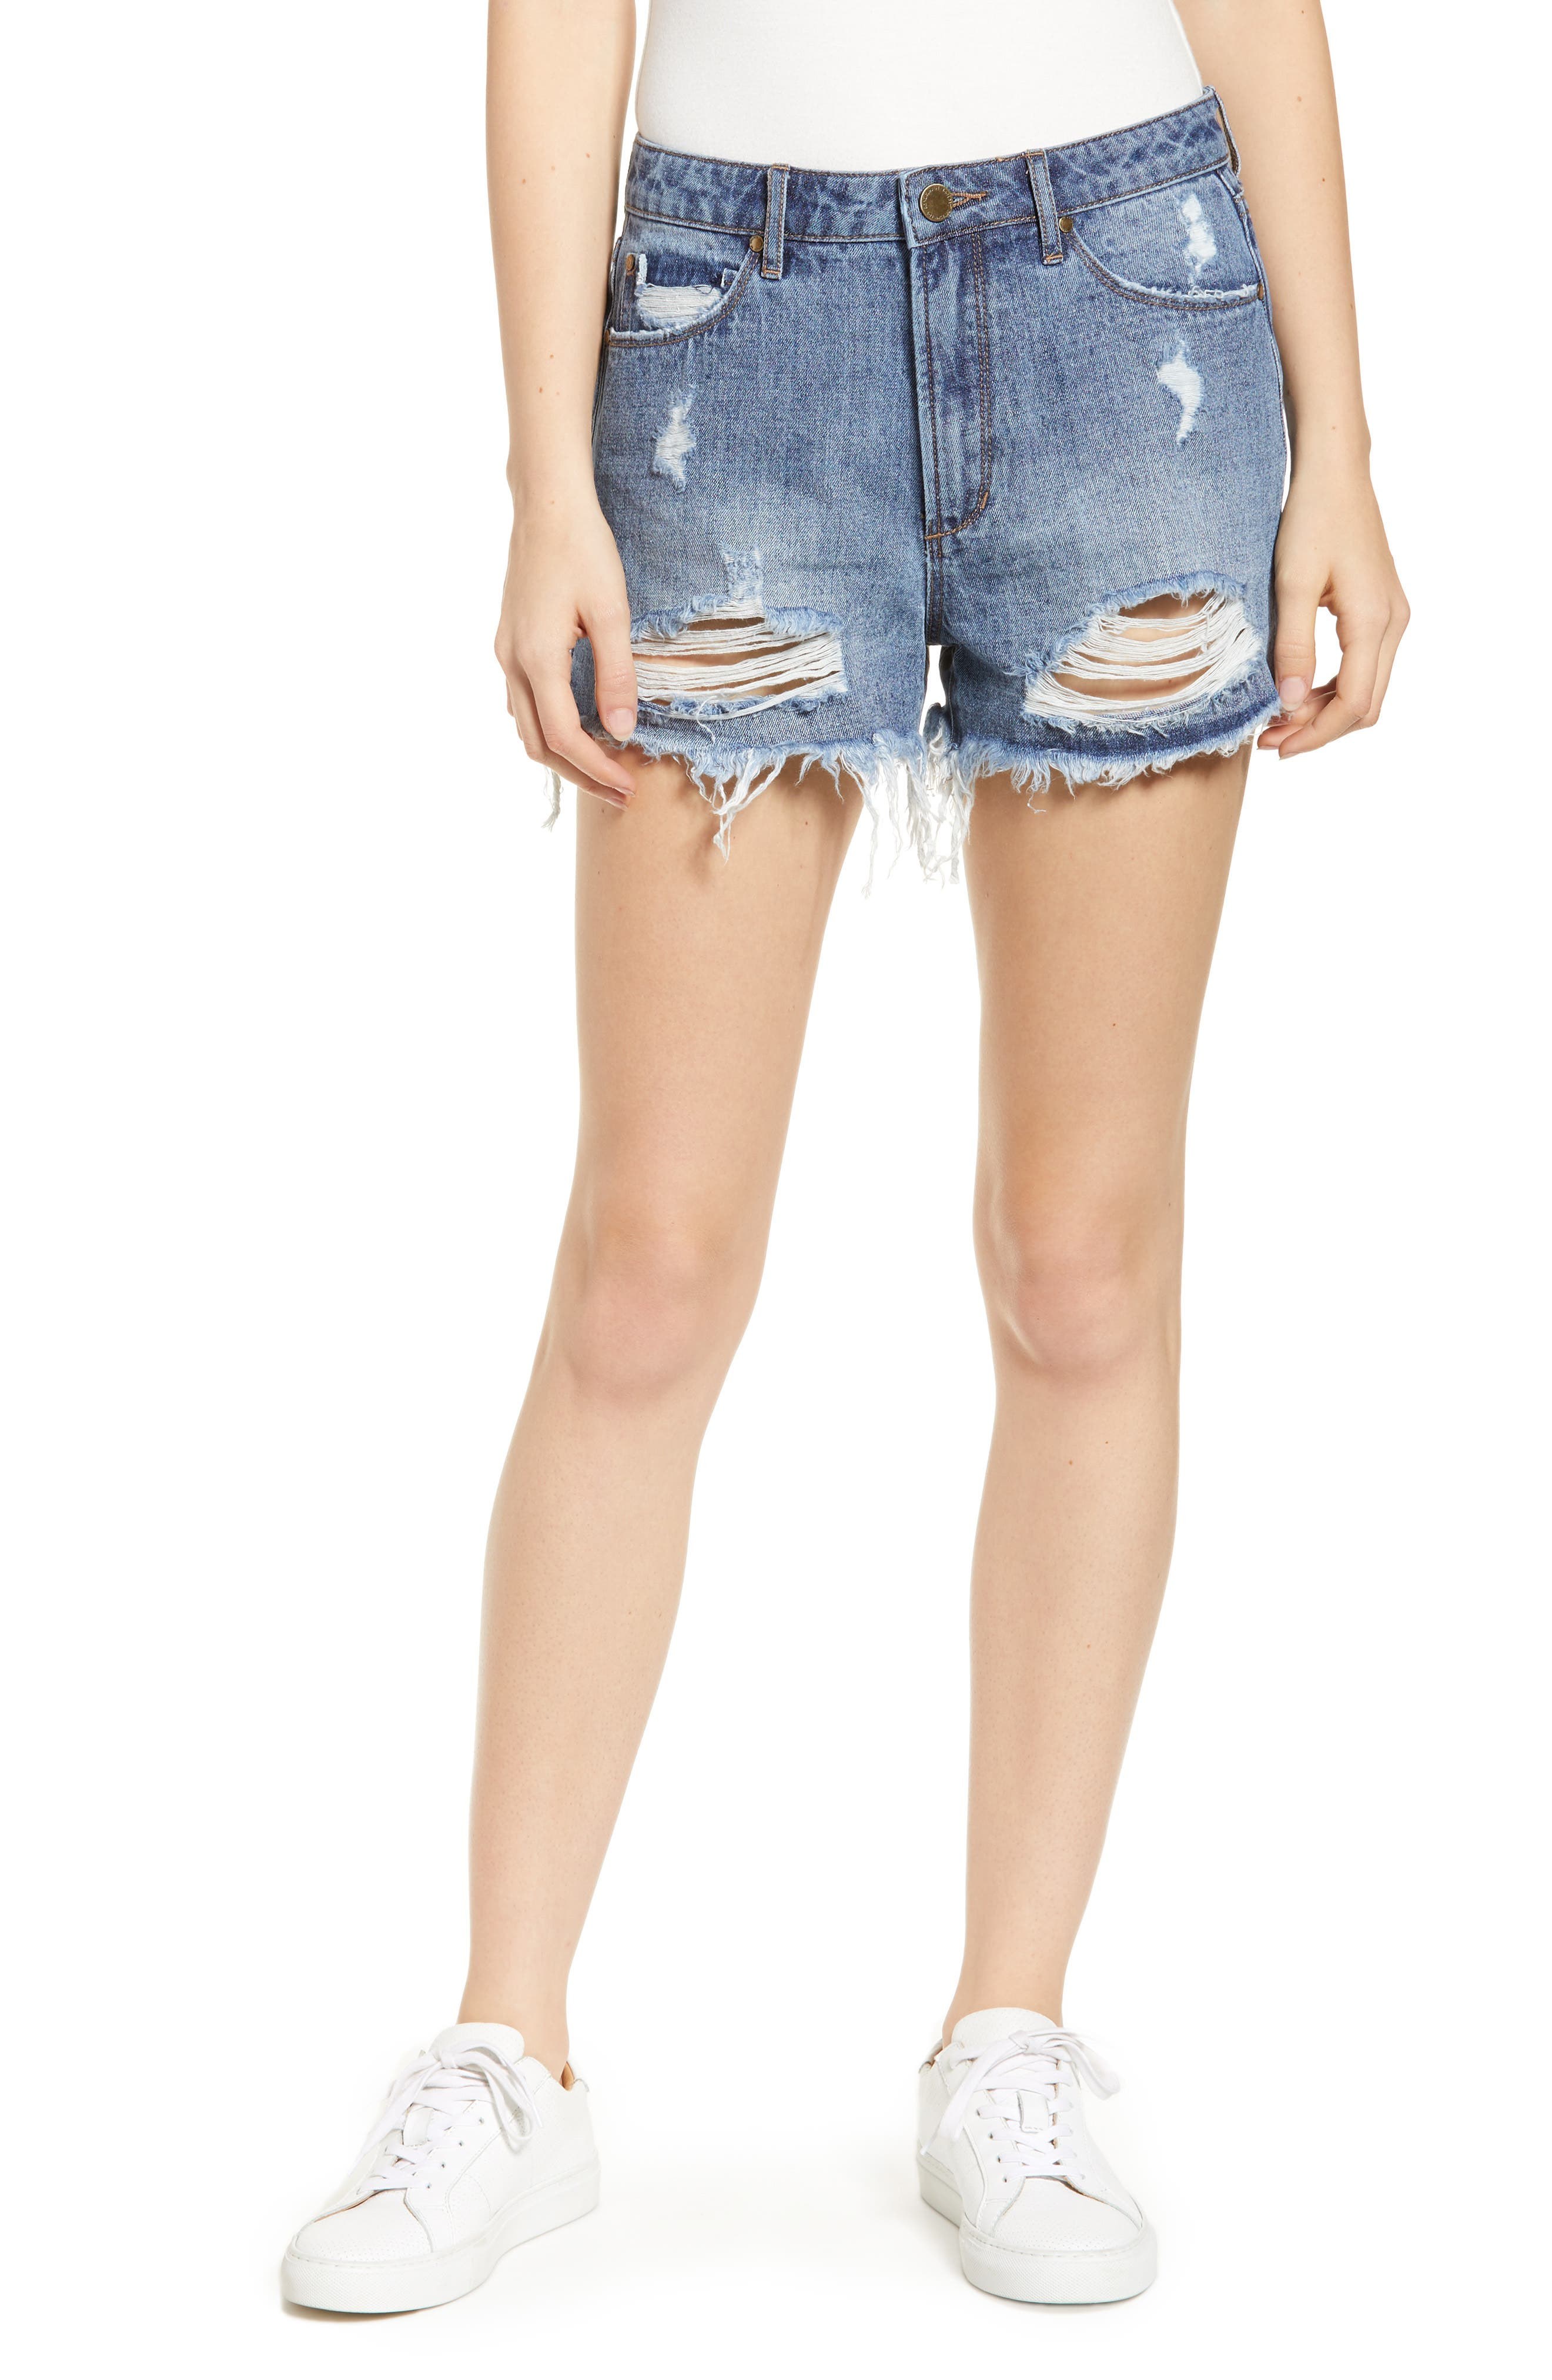 Articles of Society Meredith Ripped High Waist Denim Shorts (Freeport)